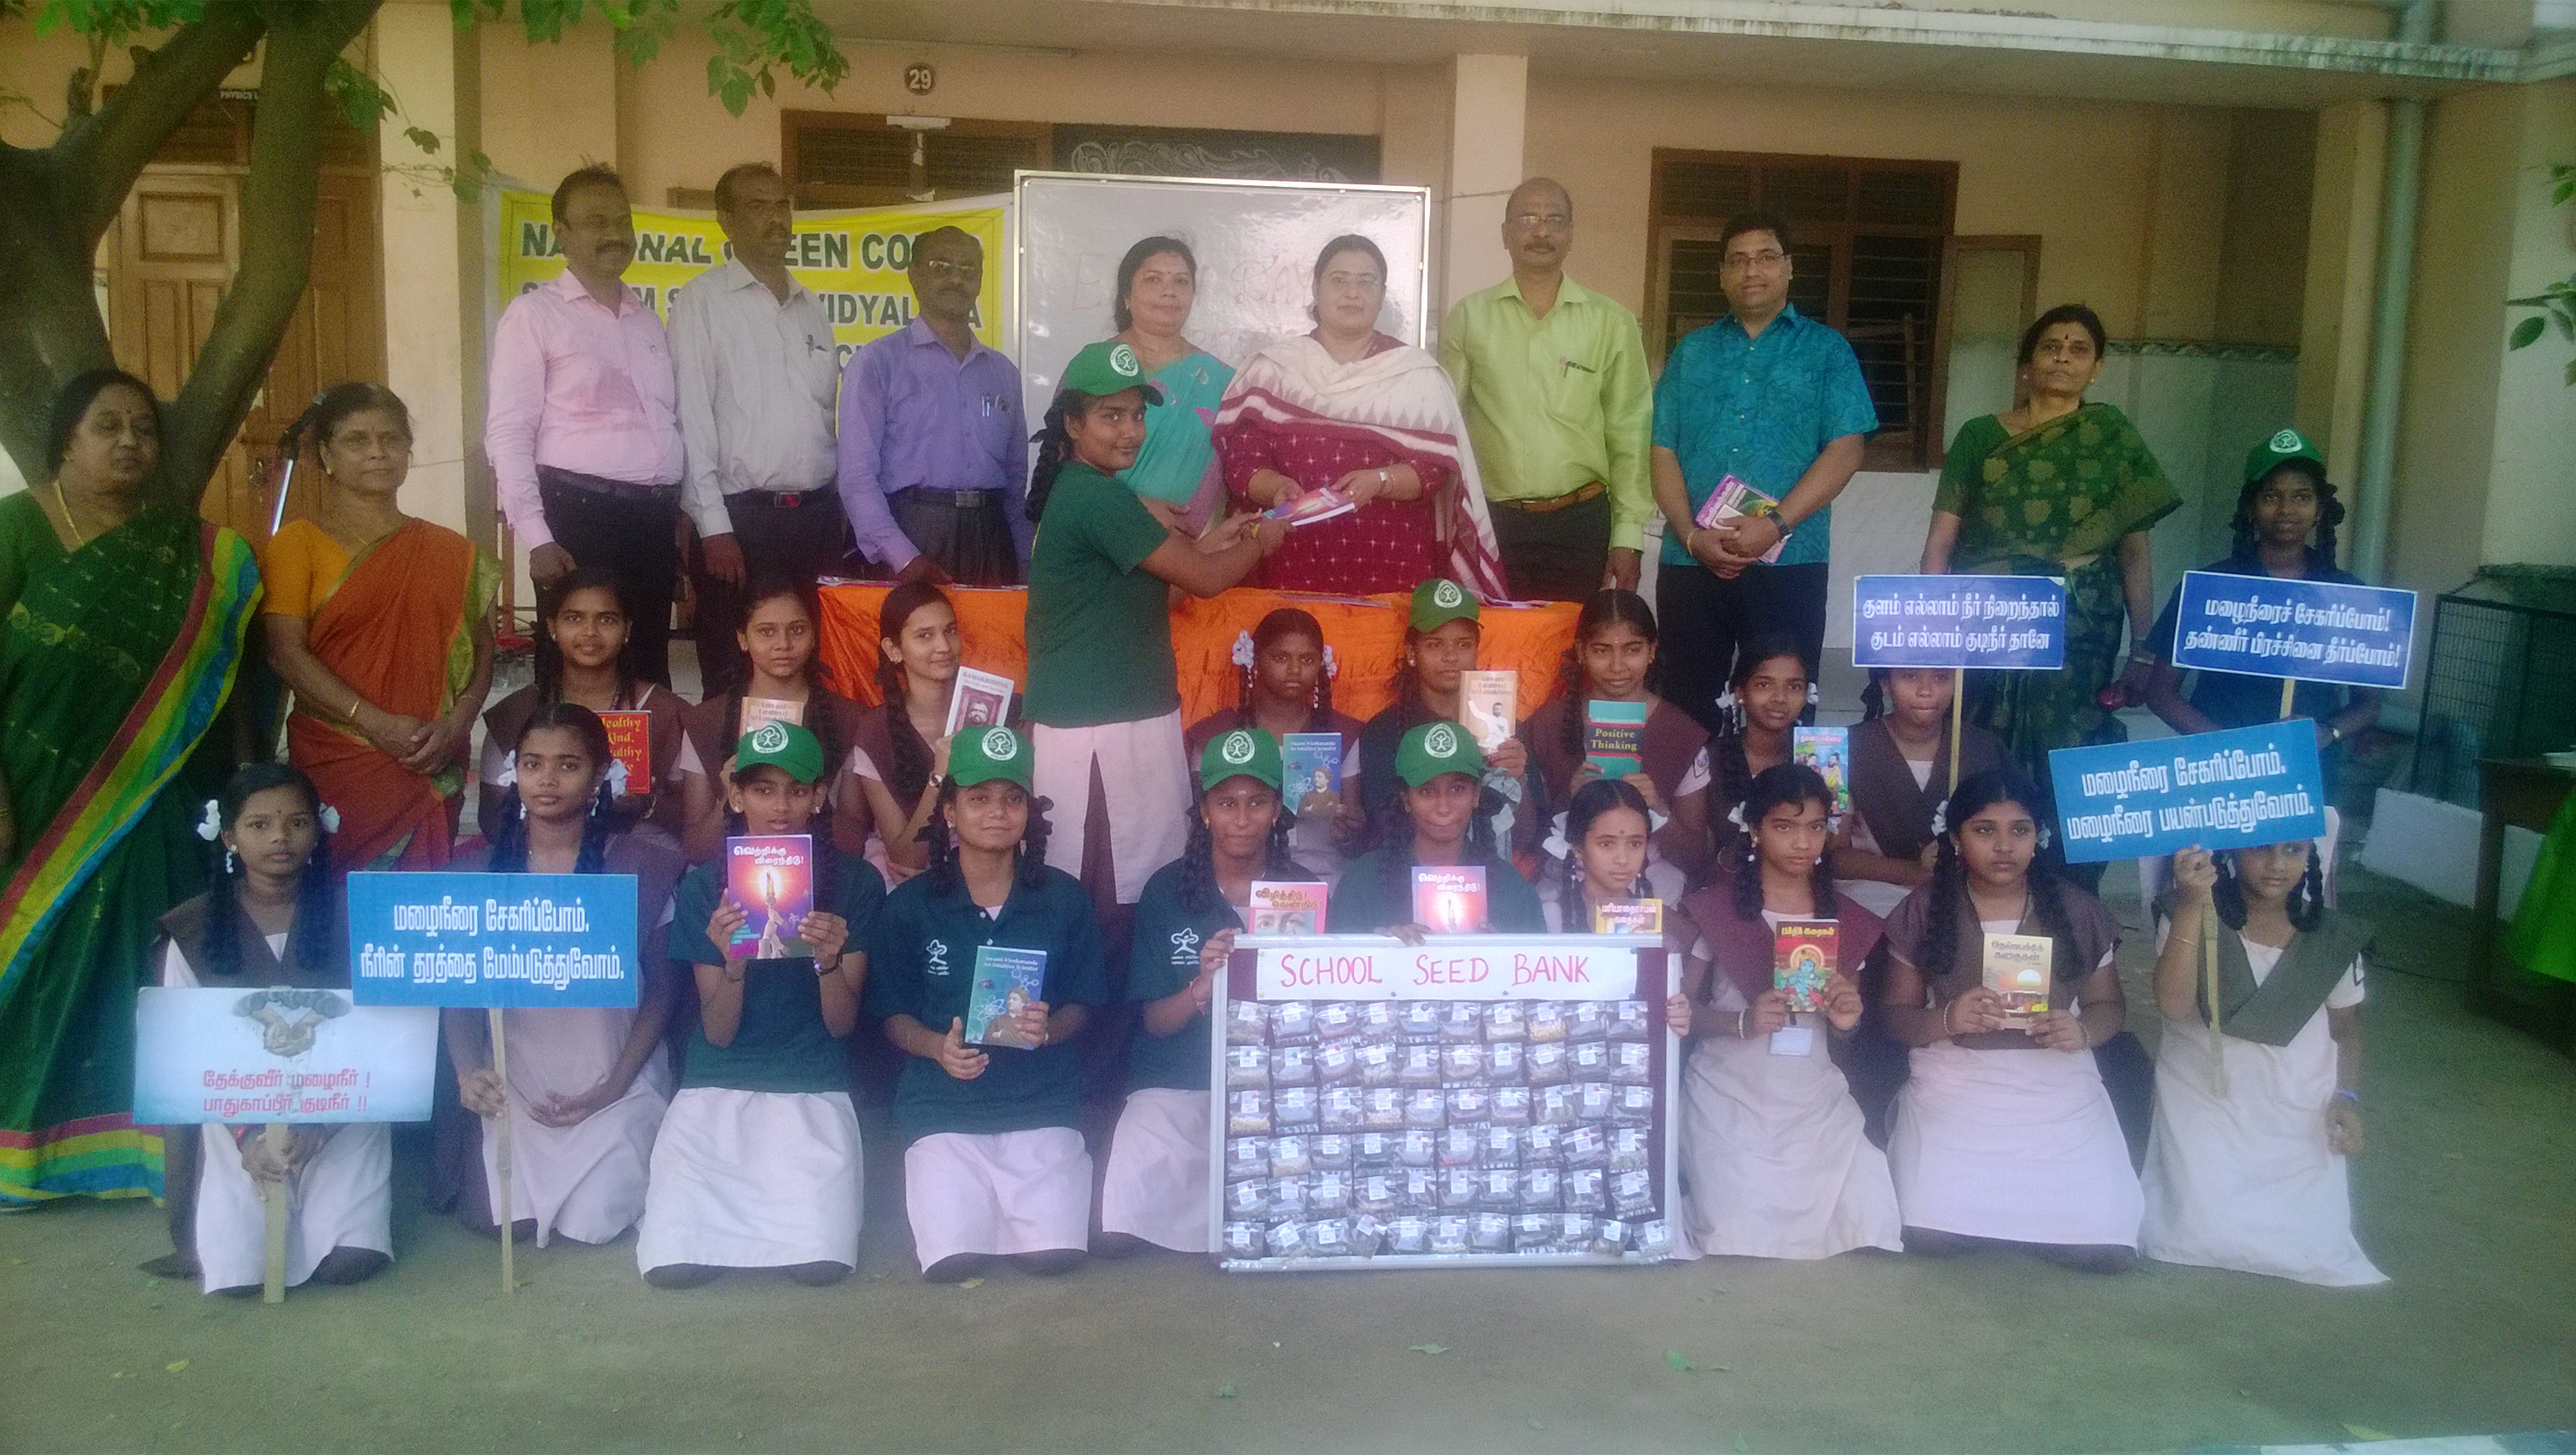 Prize distribution in SRM school